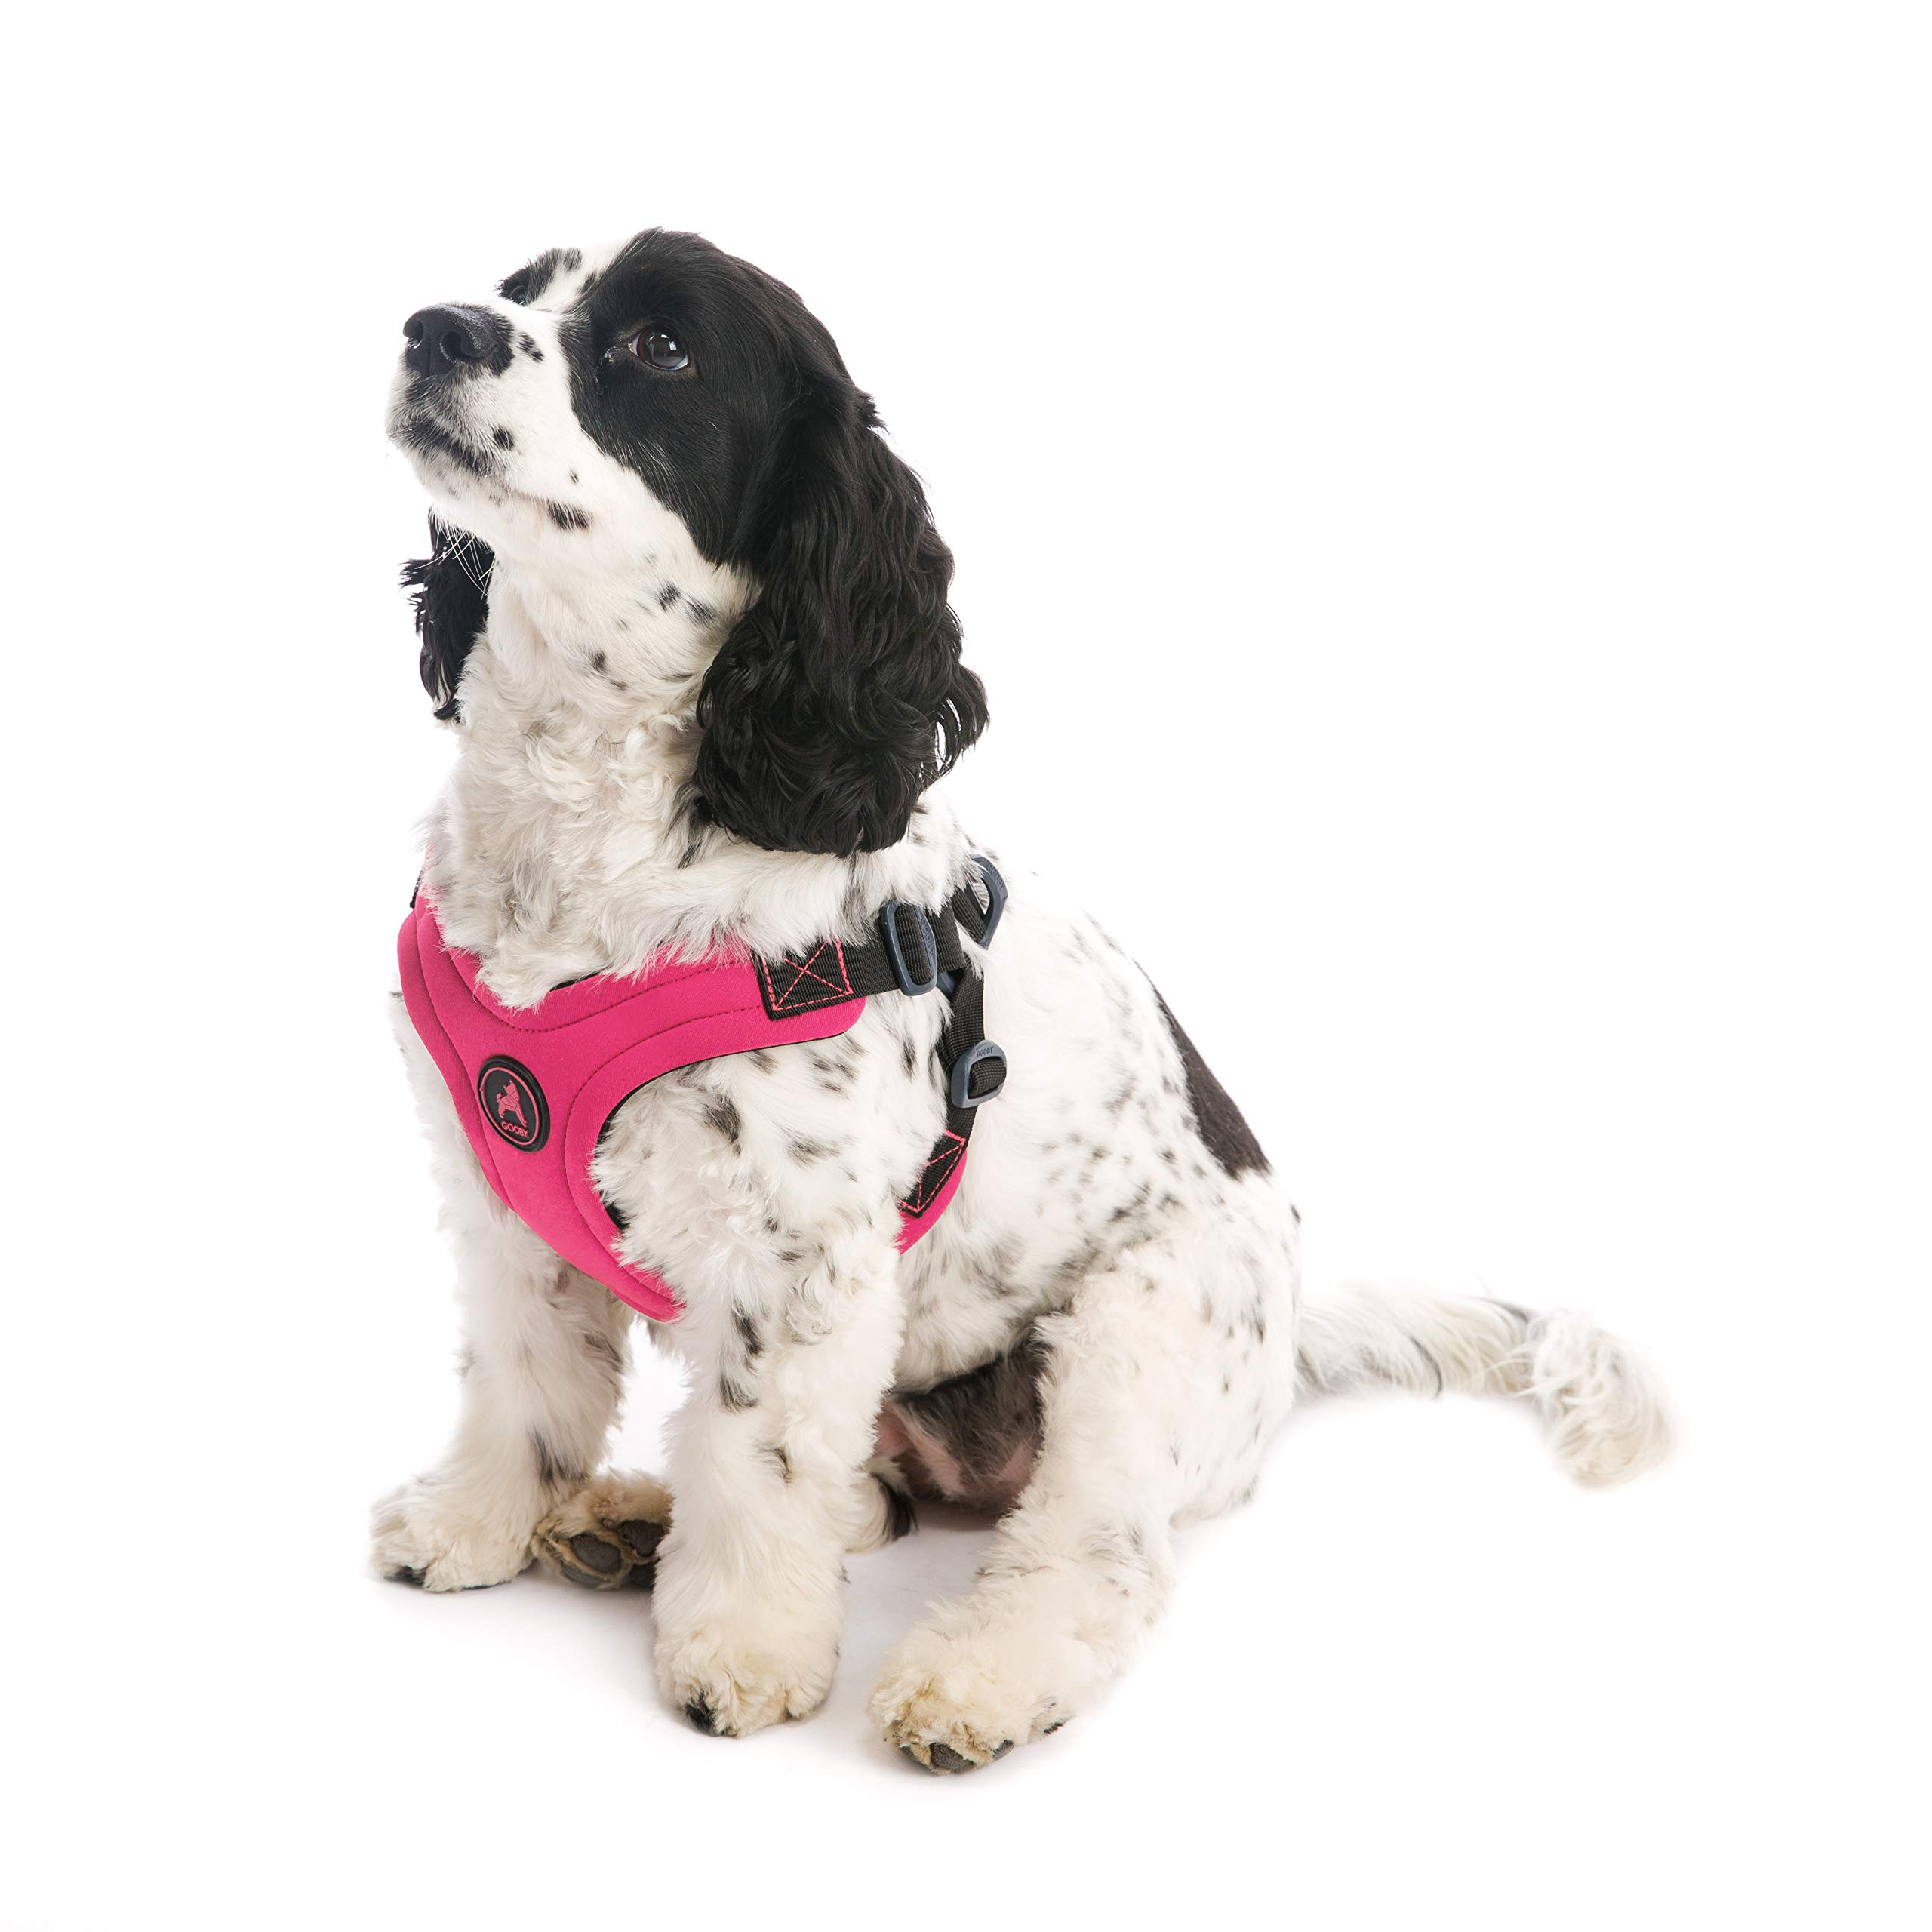 Gooby - Escape Free Sport Harness, Small Dog Step-In Neoprene Harness for Dogs that Like to Escape Their Harness, Pink, Large